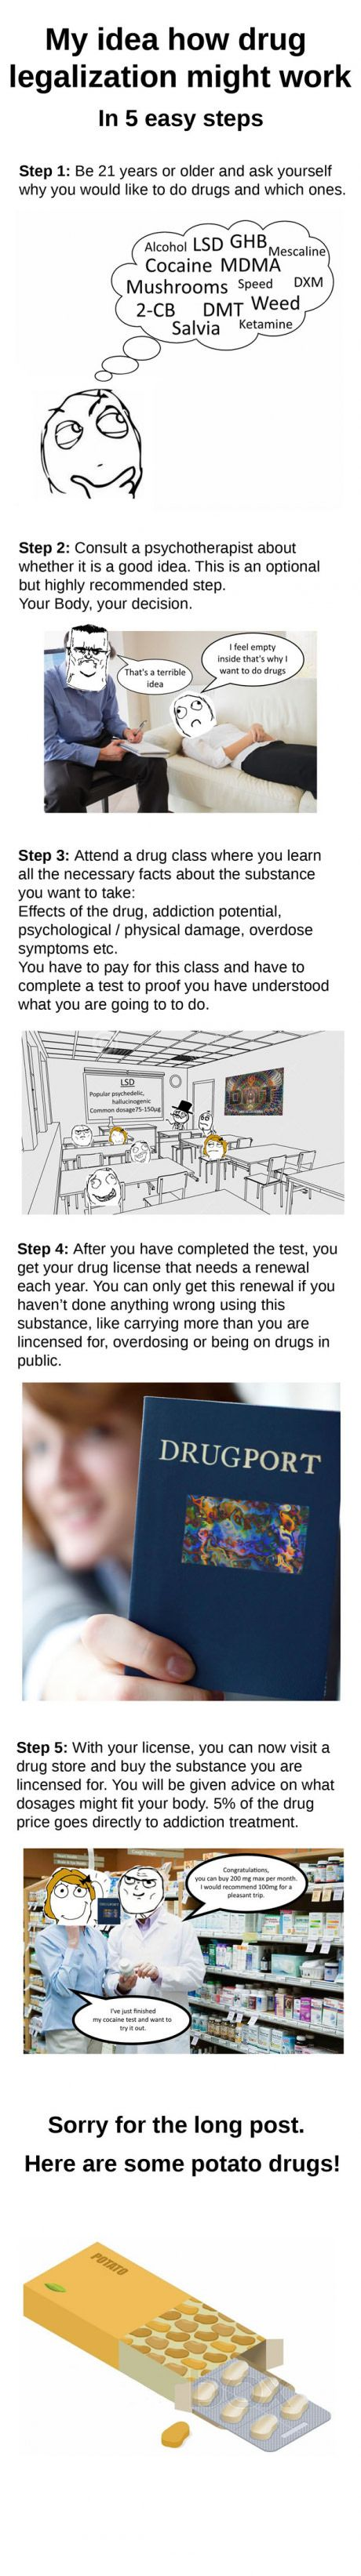 How drug legalization might work.